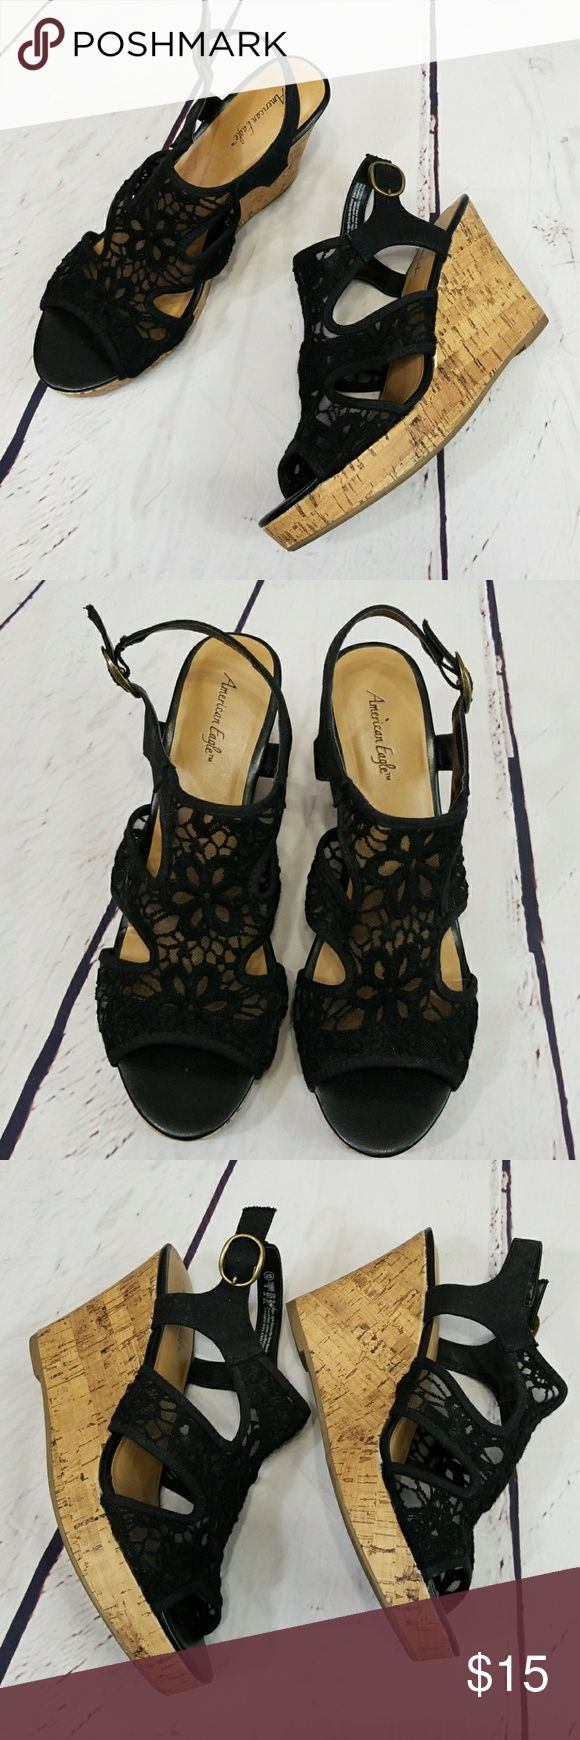 """American Eagle black lace wedges EUC American Eagle black lace wedges with buckled ankle straps. 1"""" platform and 4"""" heel. Size 10. Fabric upper/balance man made materials. American Eagle By Payless Shoes Wedges"""